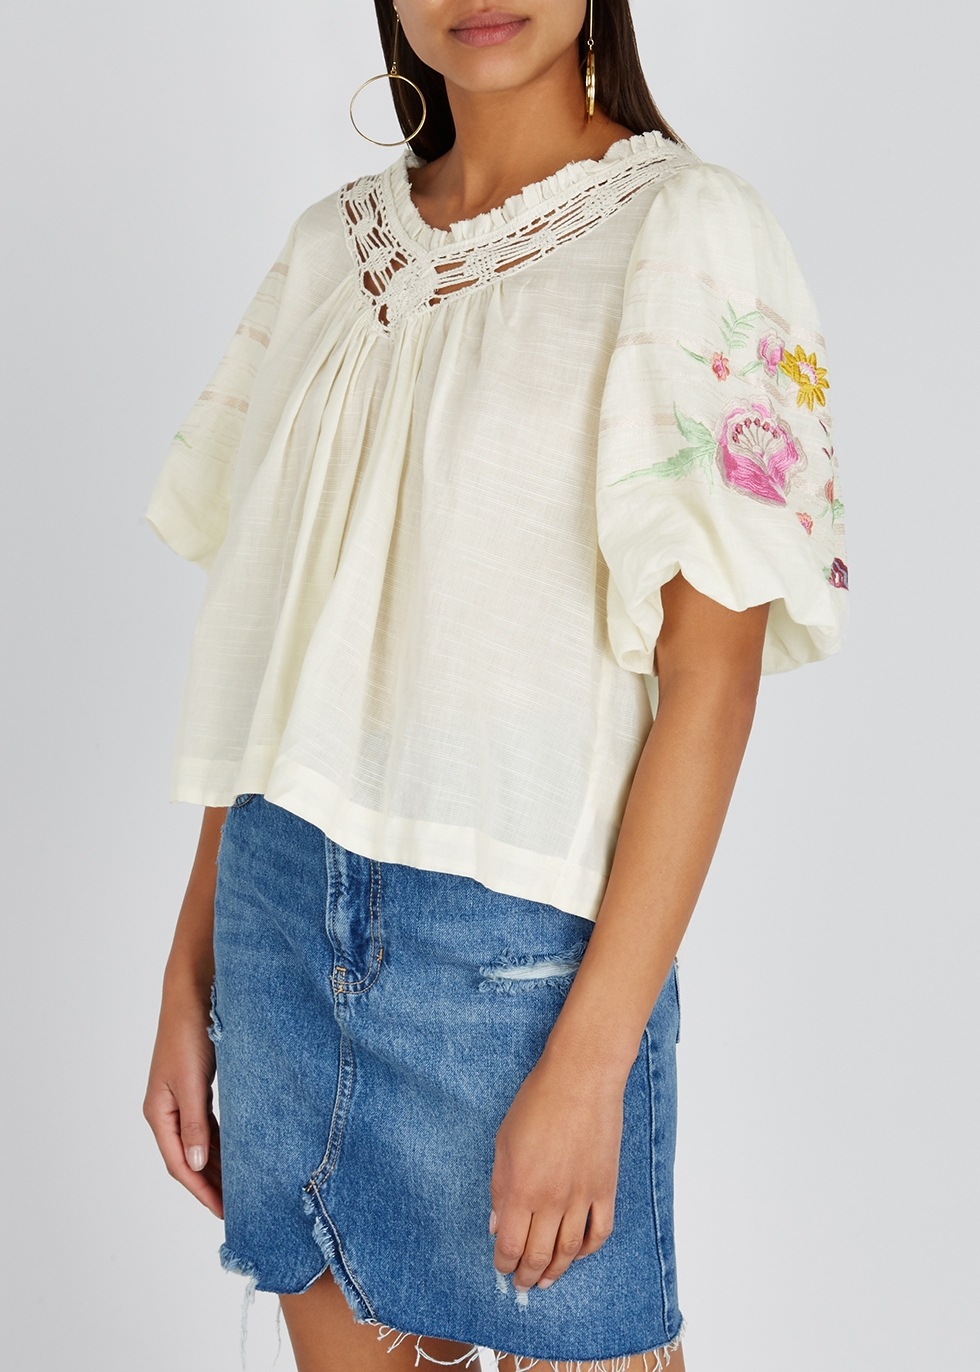 Bohemia embroidered gauze top - Free People